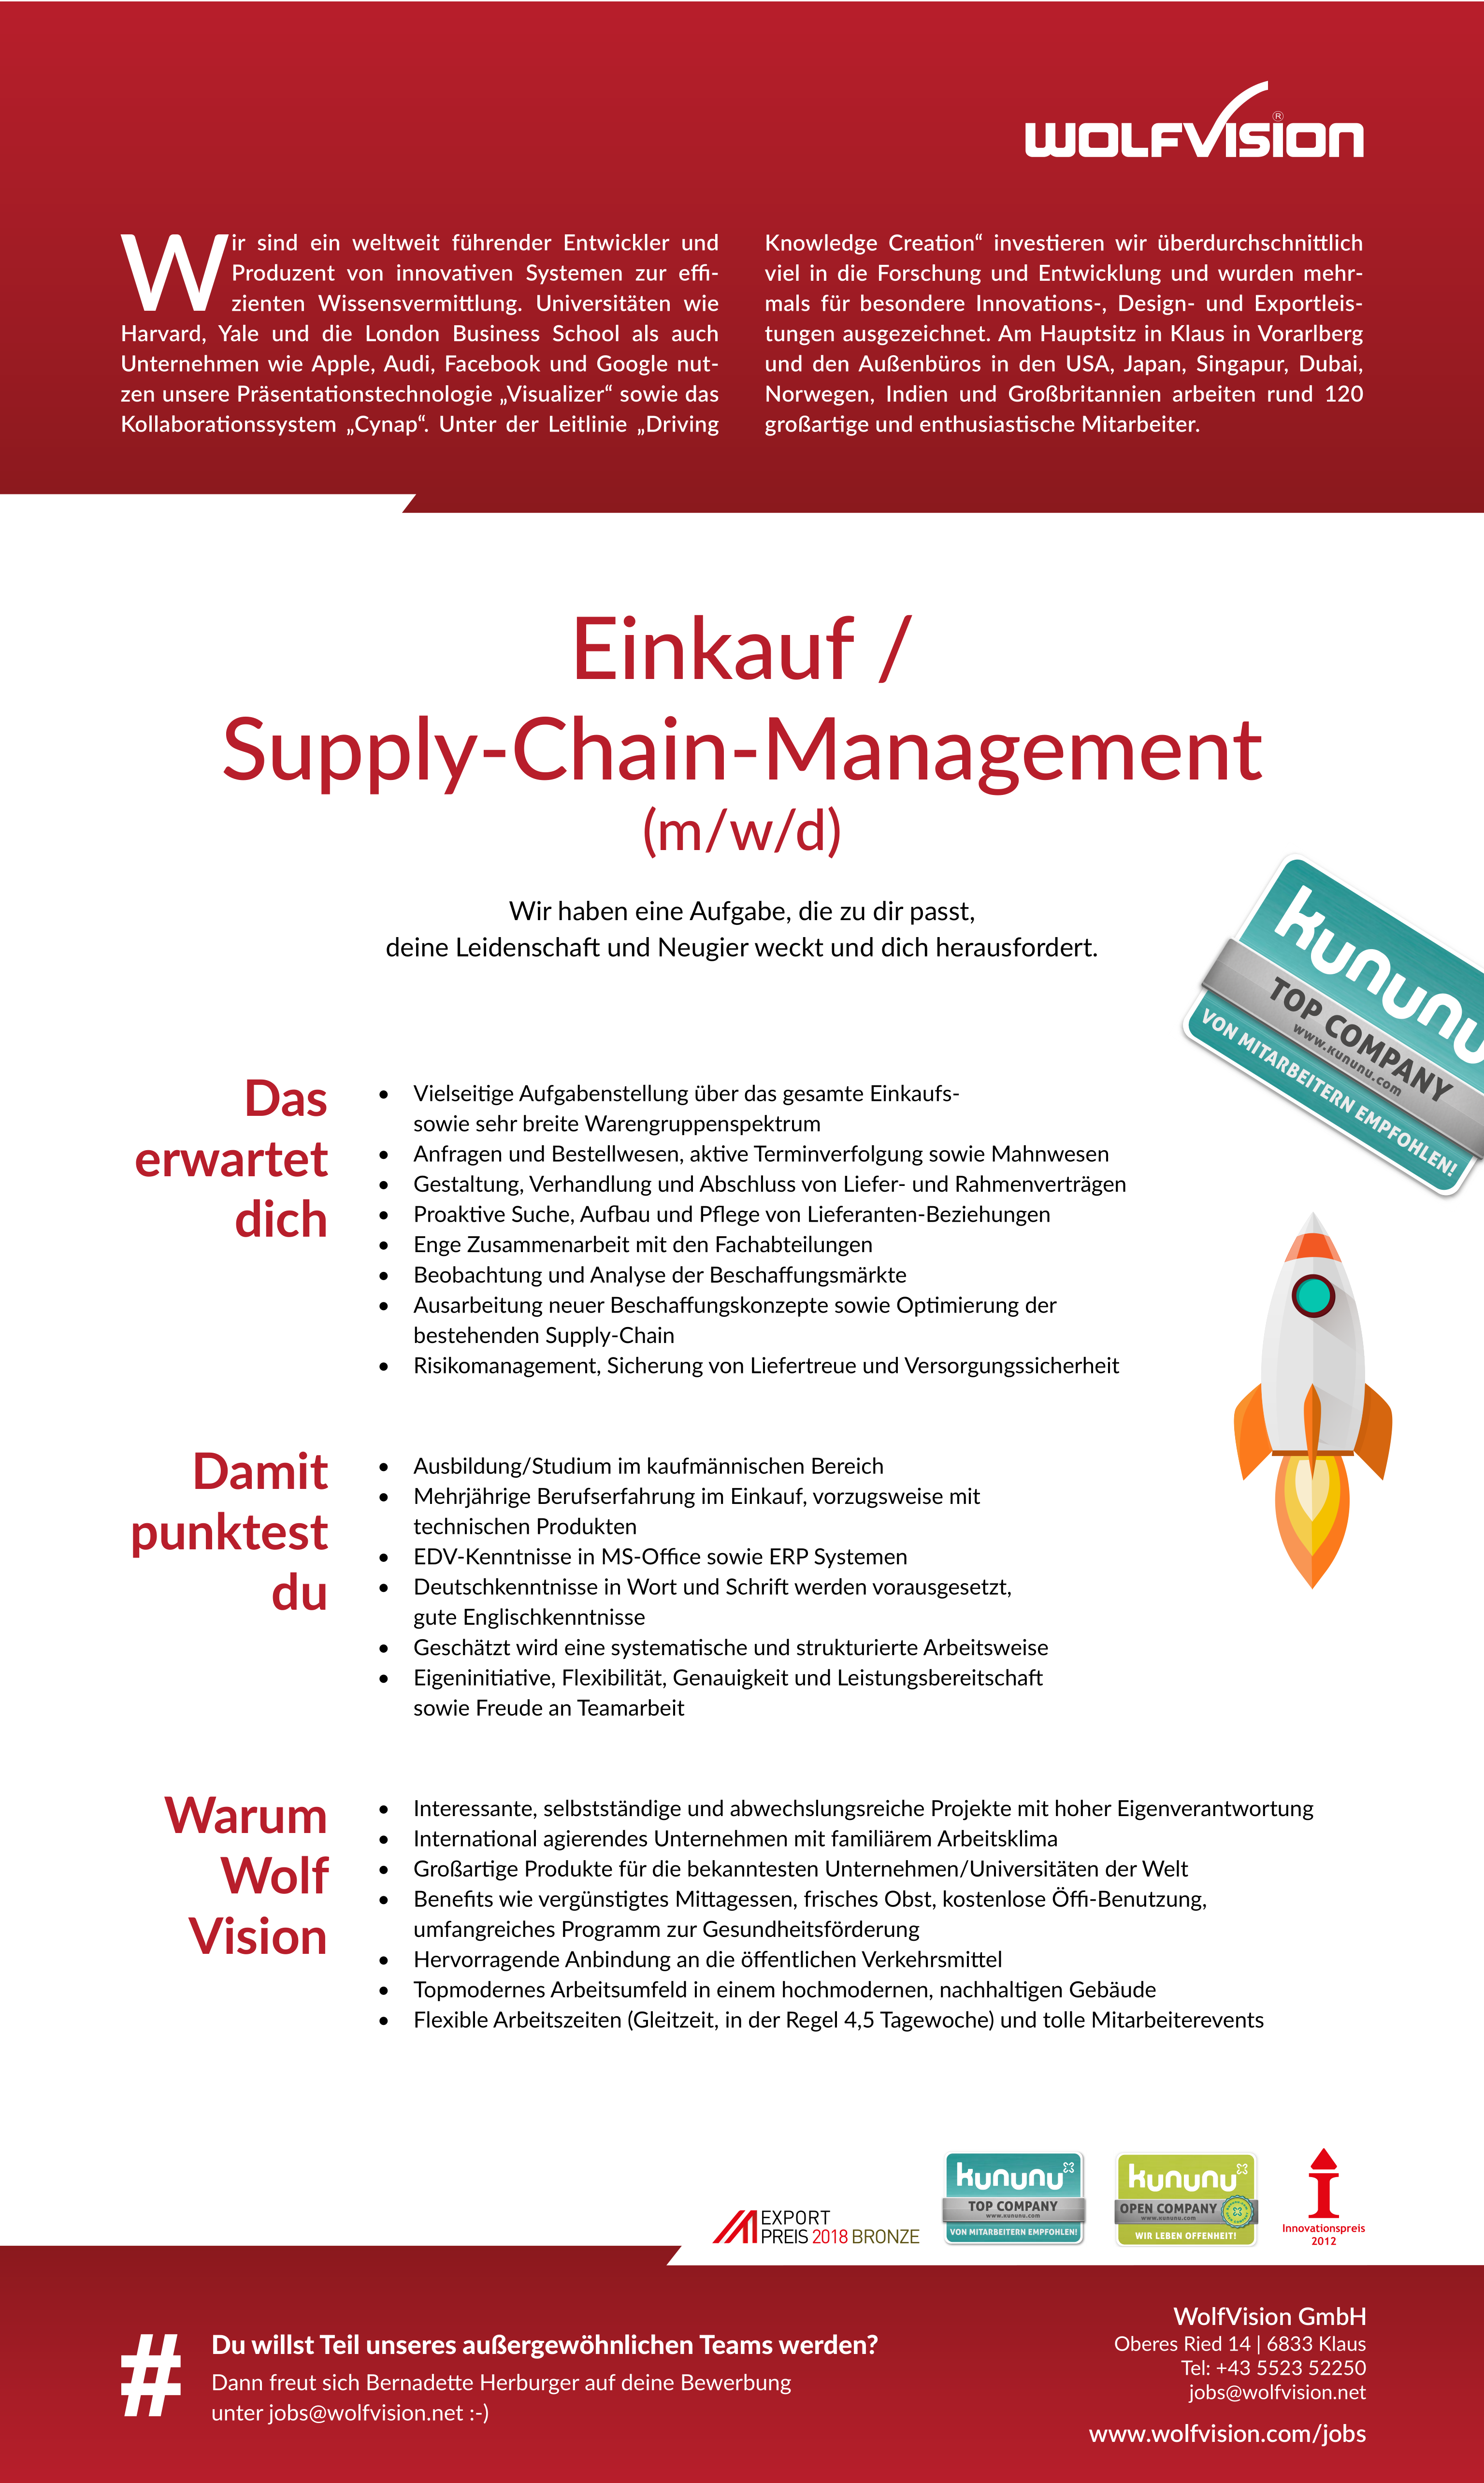 Einkauf / Supply-Chain-Management (m/w/d)